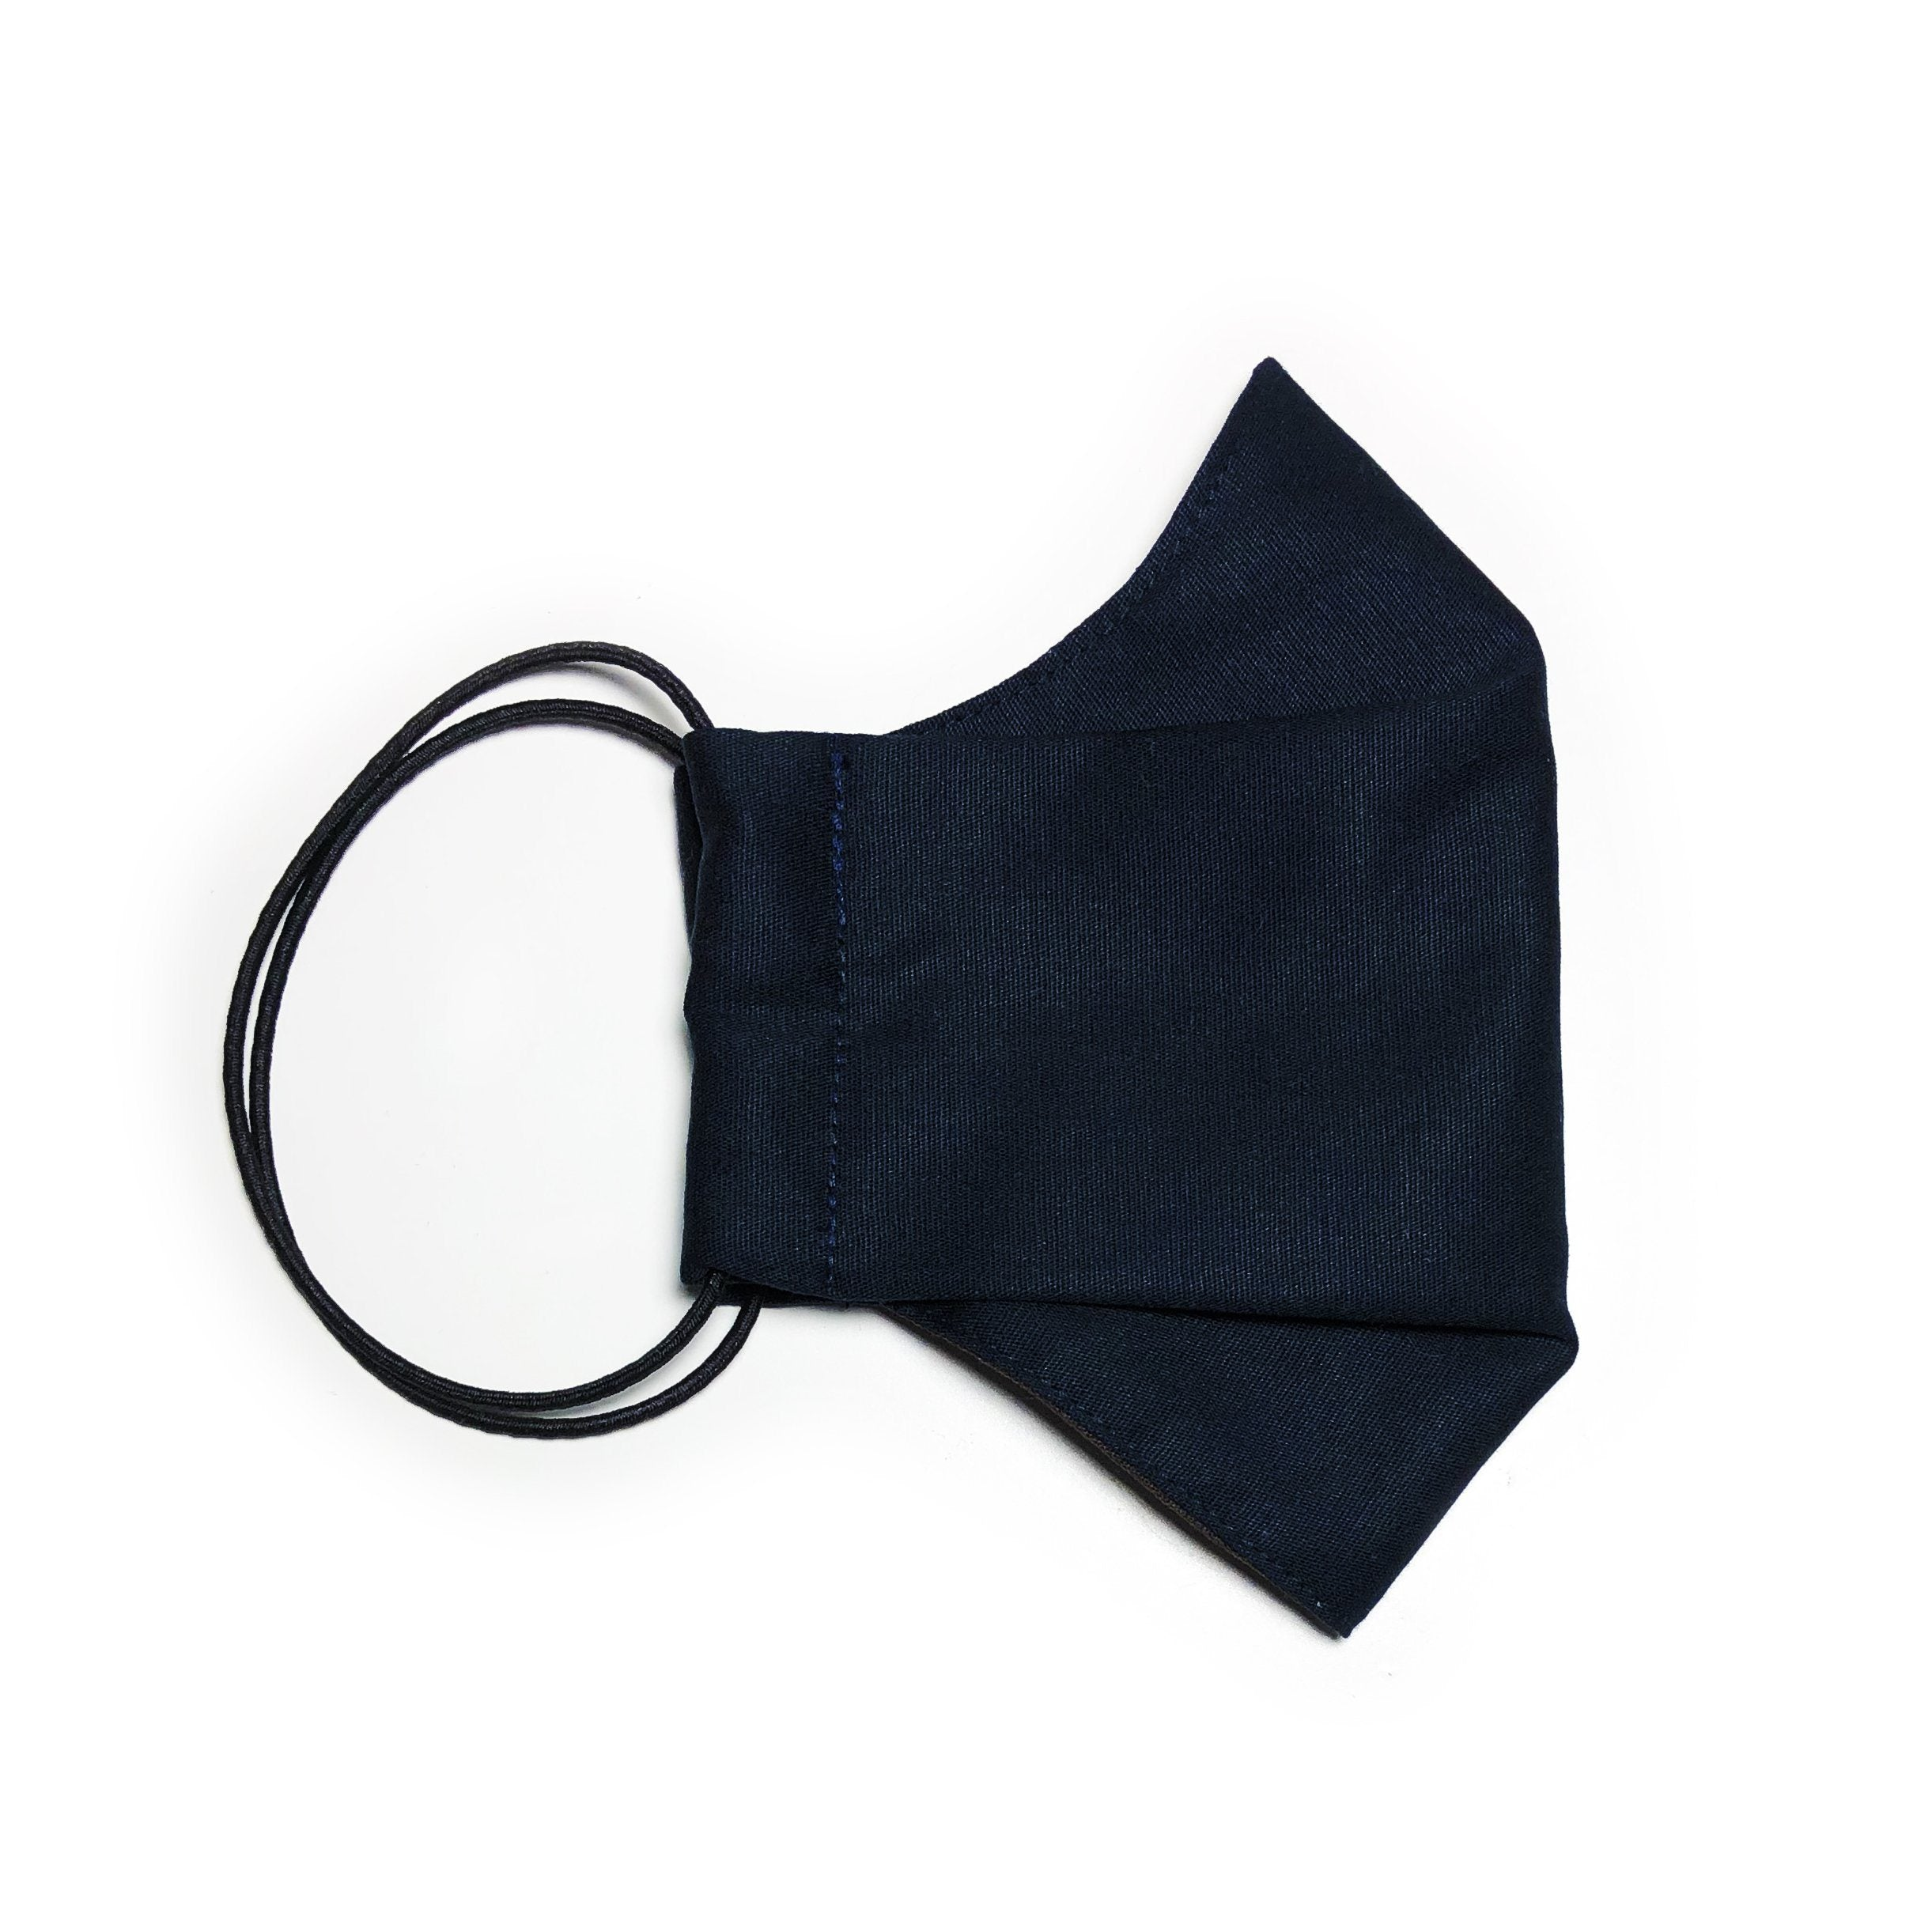 Mask - Navy Blue Dream Fit Mask - KIDS